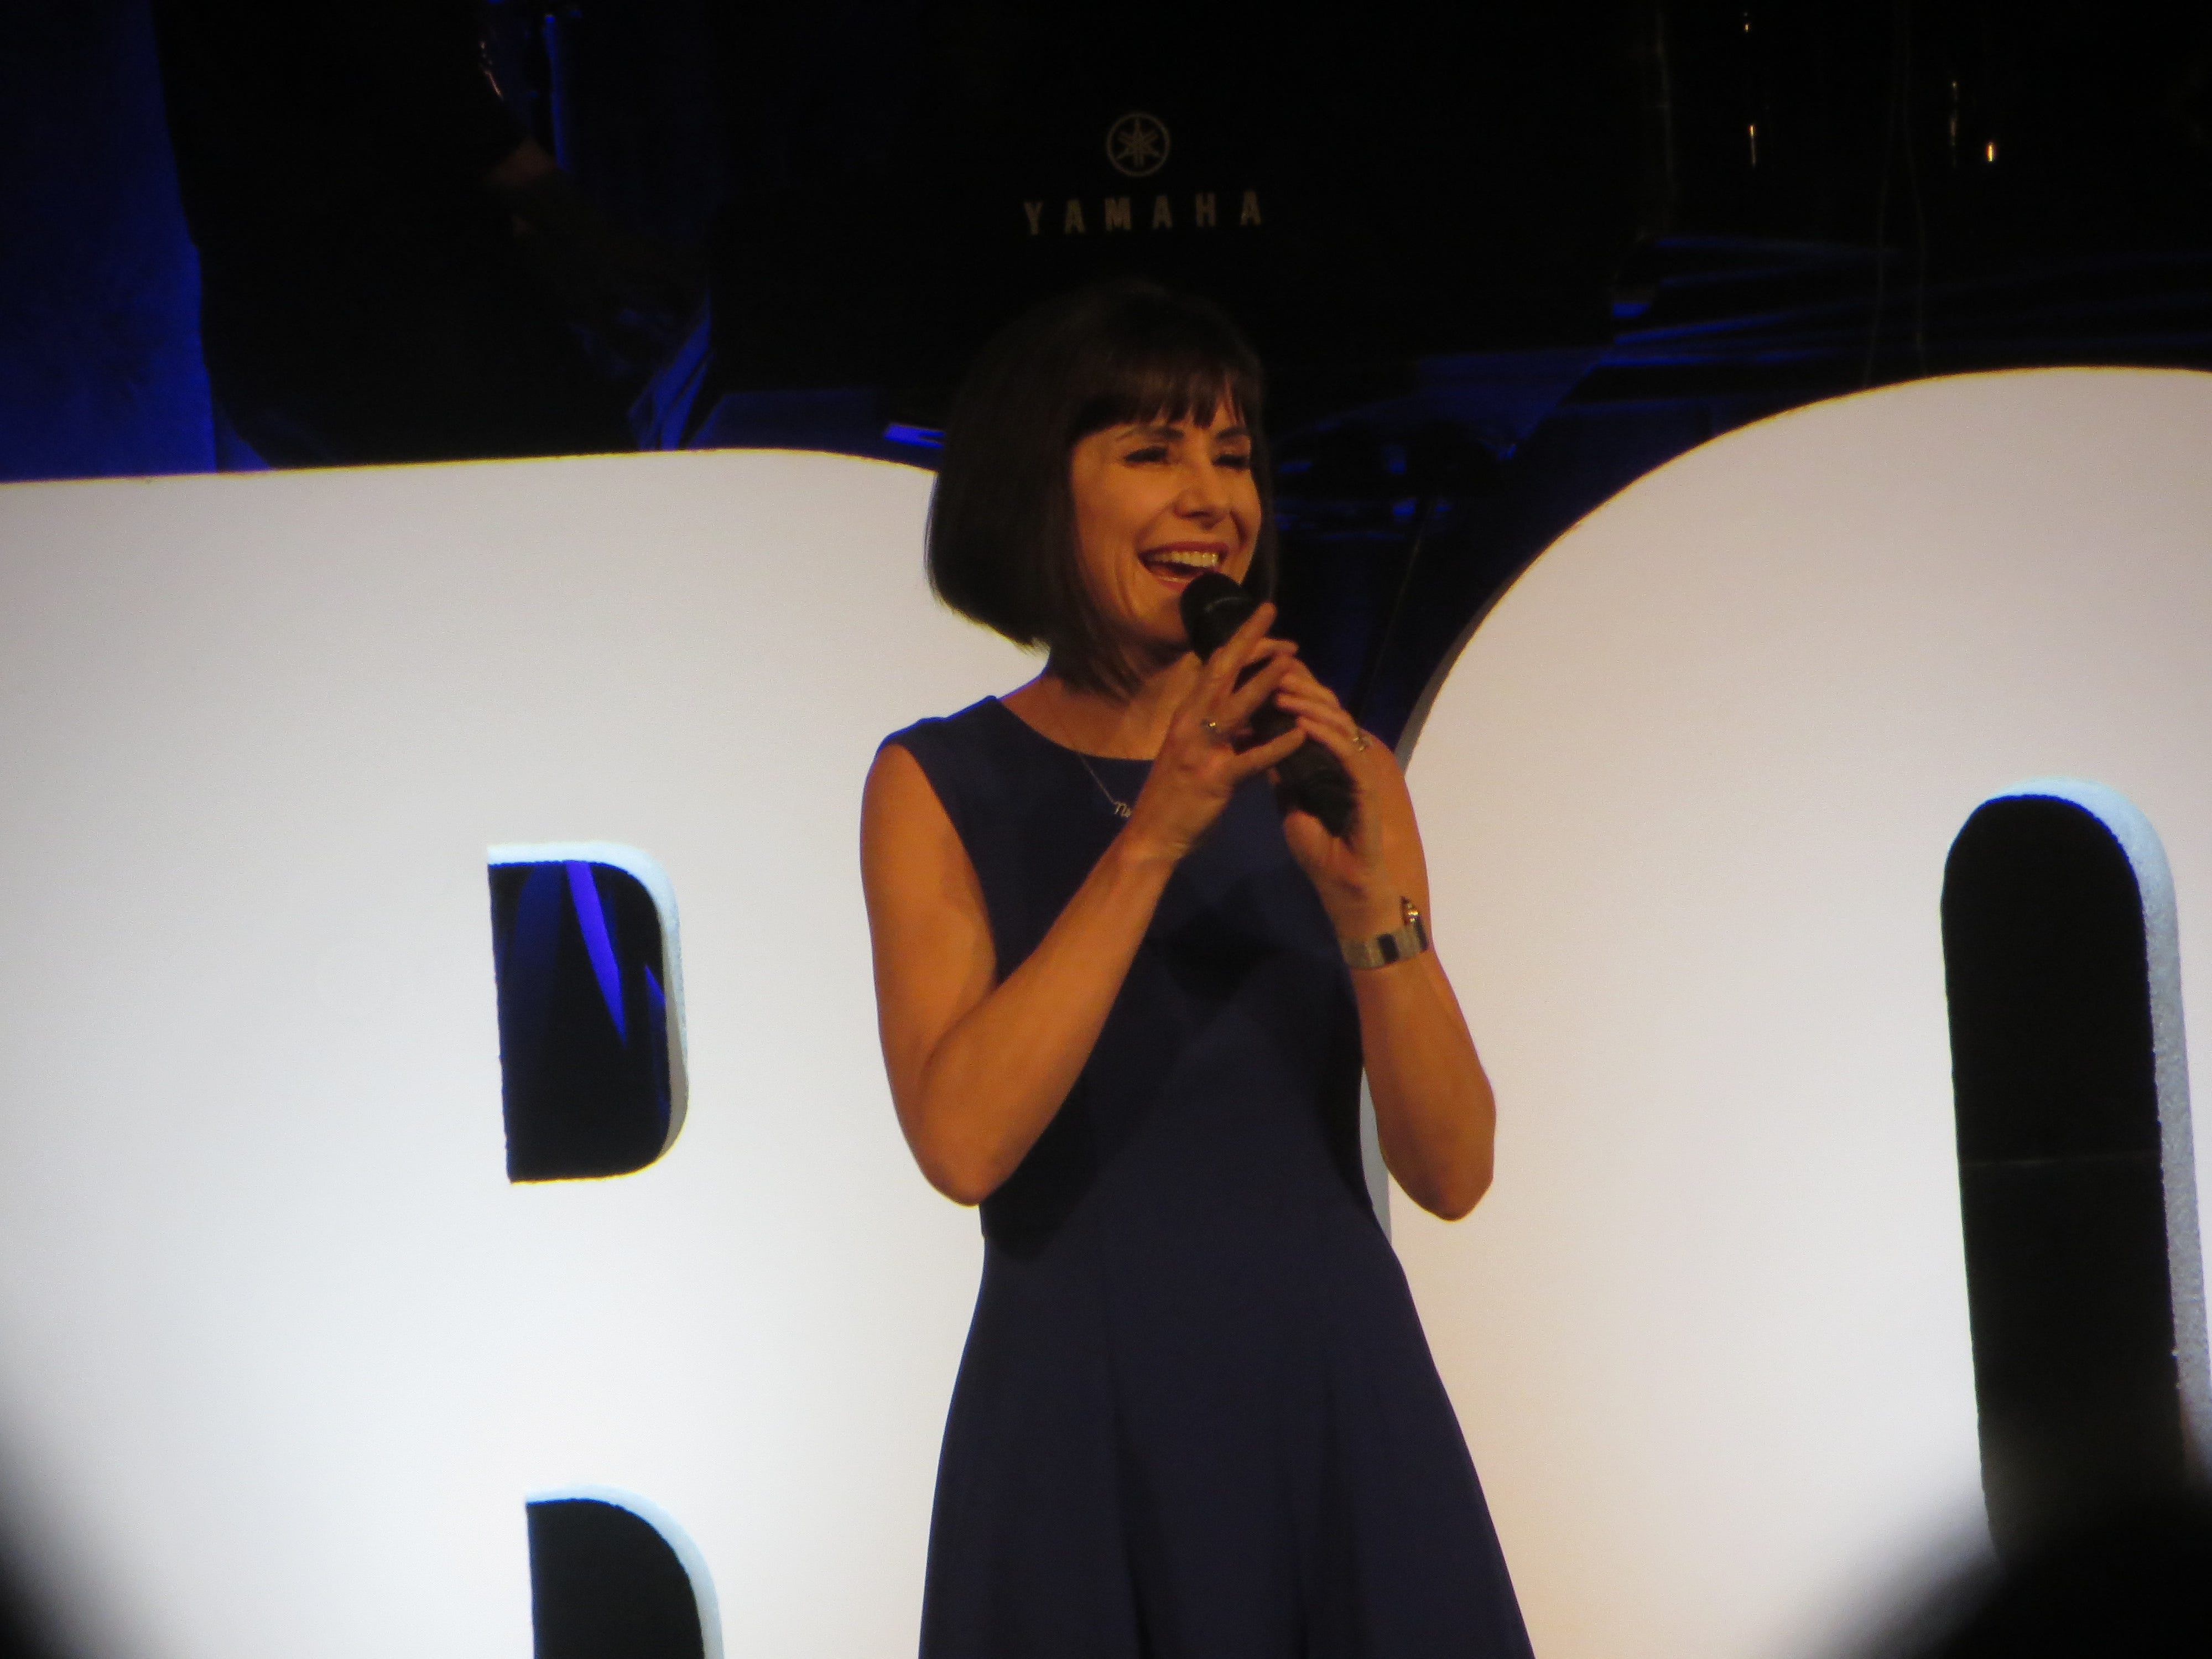 Susan Egan sings during the opening ceremony at BroadwayCon 2019, held Jan. 11 to 13, 2019, at the New York Hilton Midtown in Manhattan.